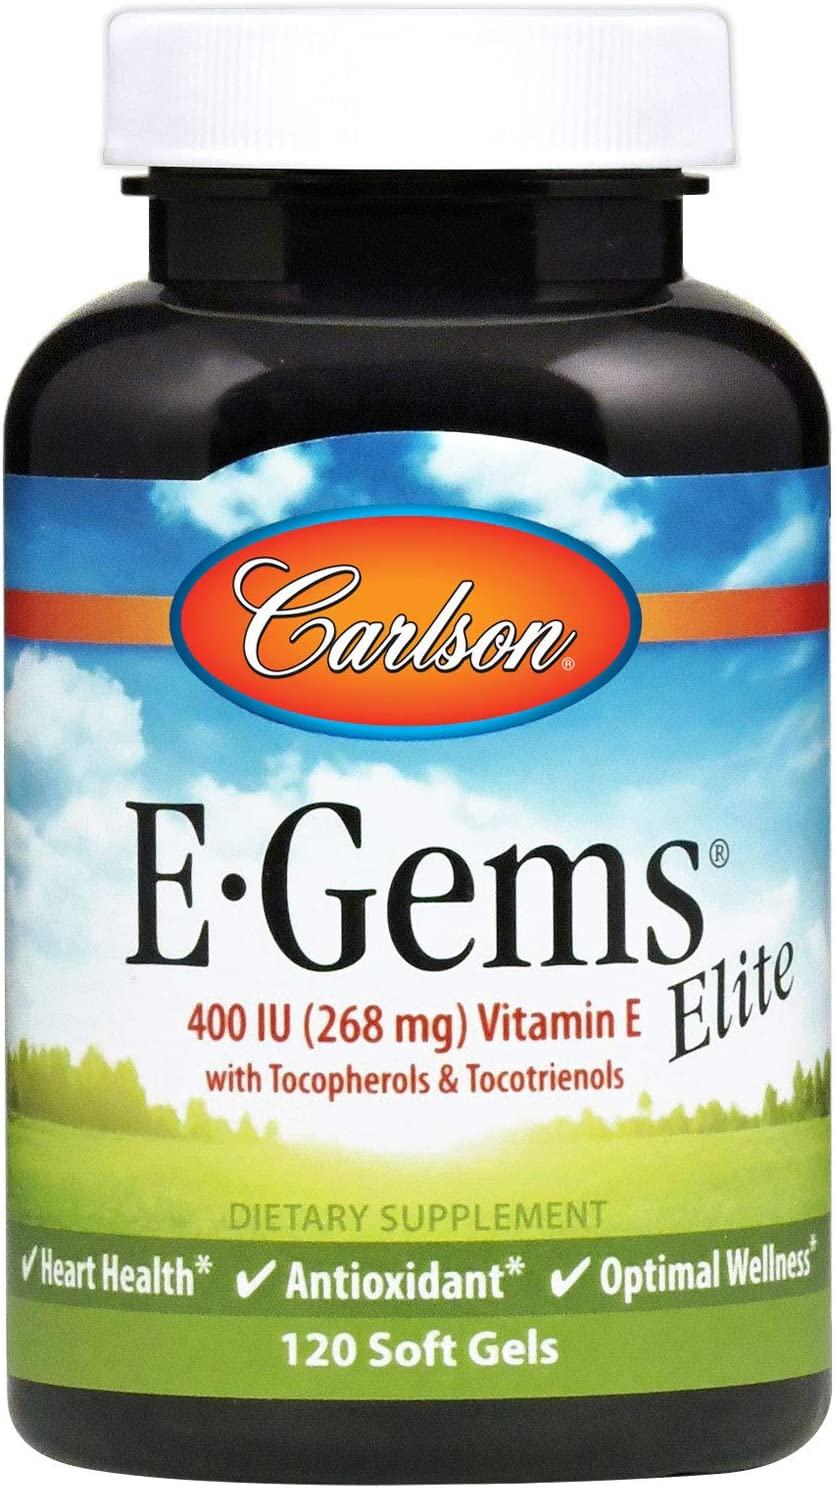 Carlson - E-Gems Elite, 400 IU (268 mg) Vitamin E with Tocopherols & Tocotrienols, Natural-Source, Vitamin E Capsules, Heart Health & Optimal Wellness, Antioxidant, Vitamin E Supplement, 120 Softgels